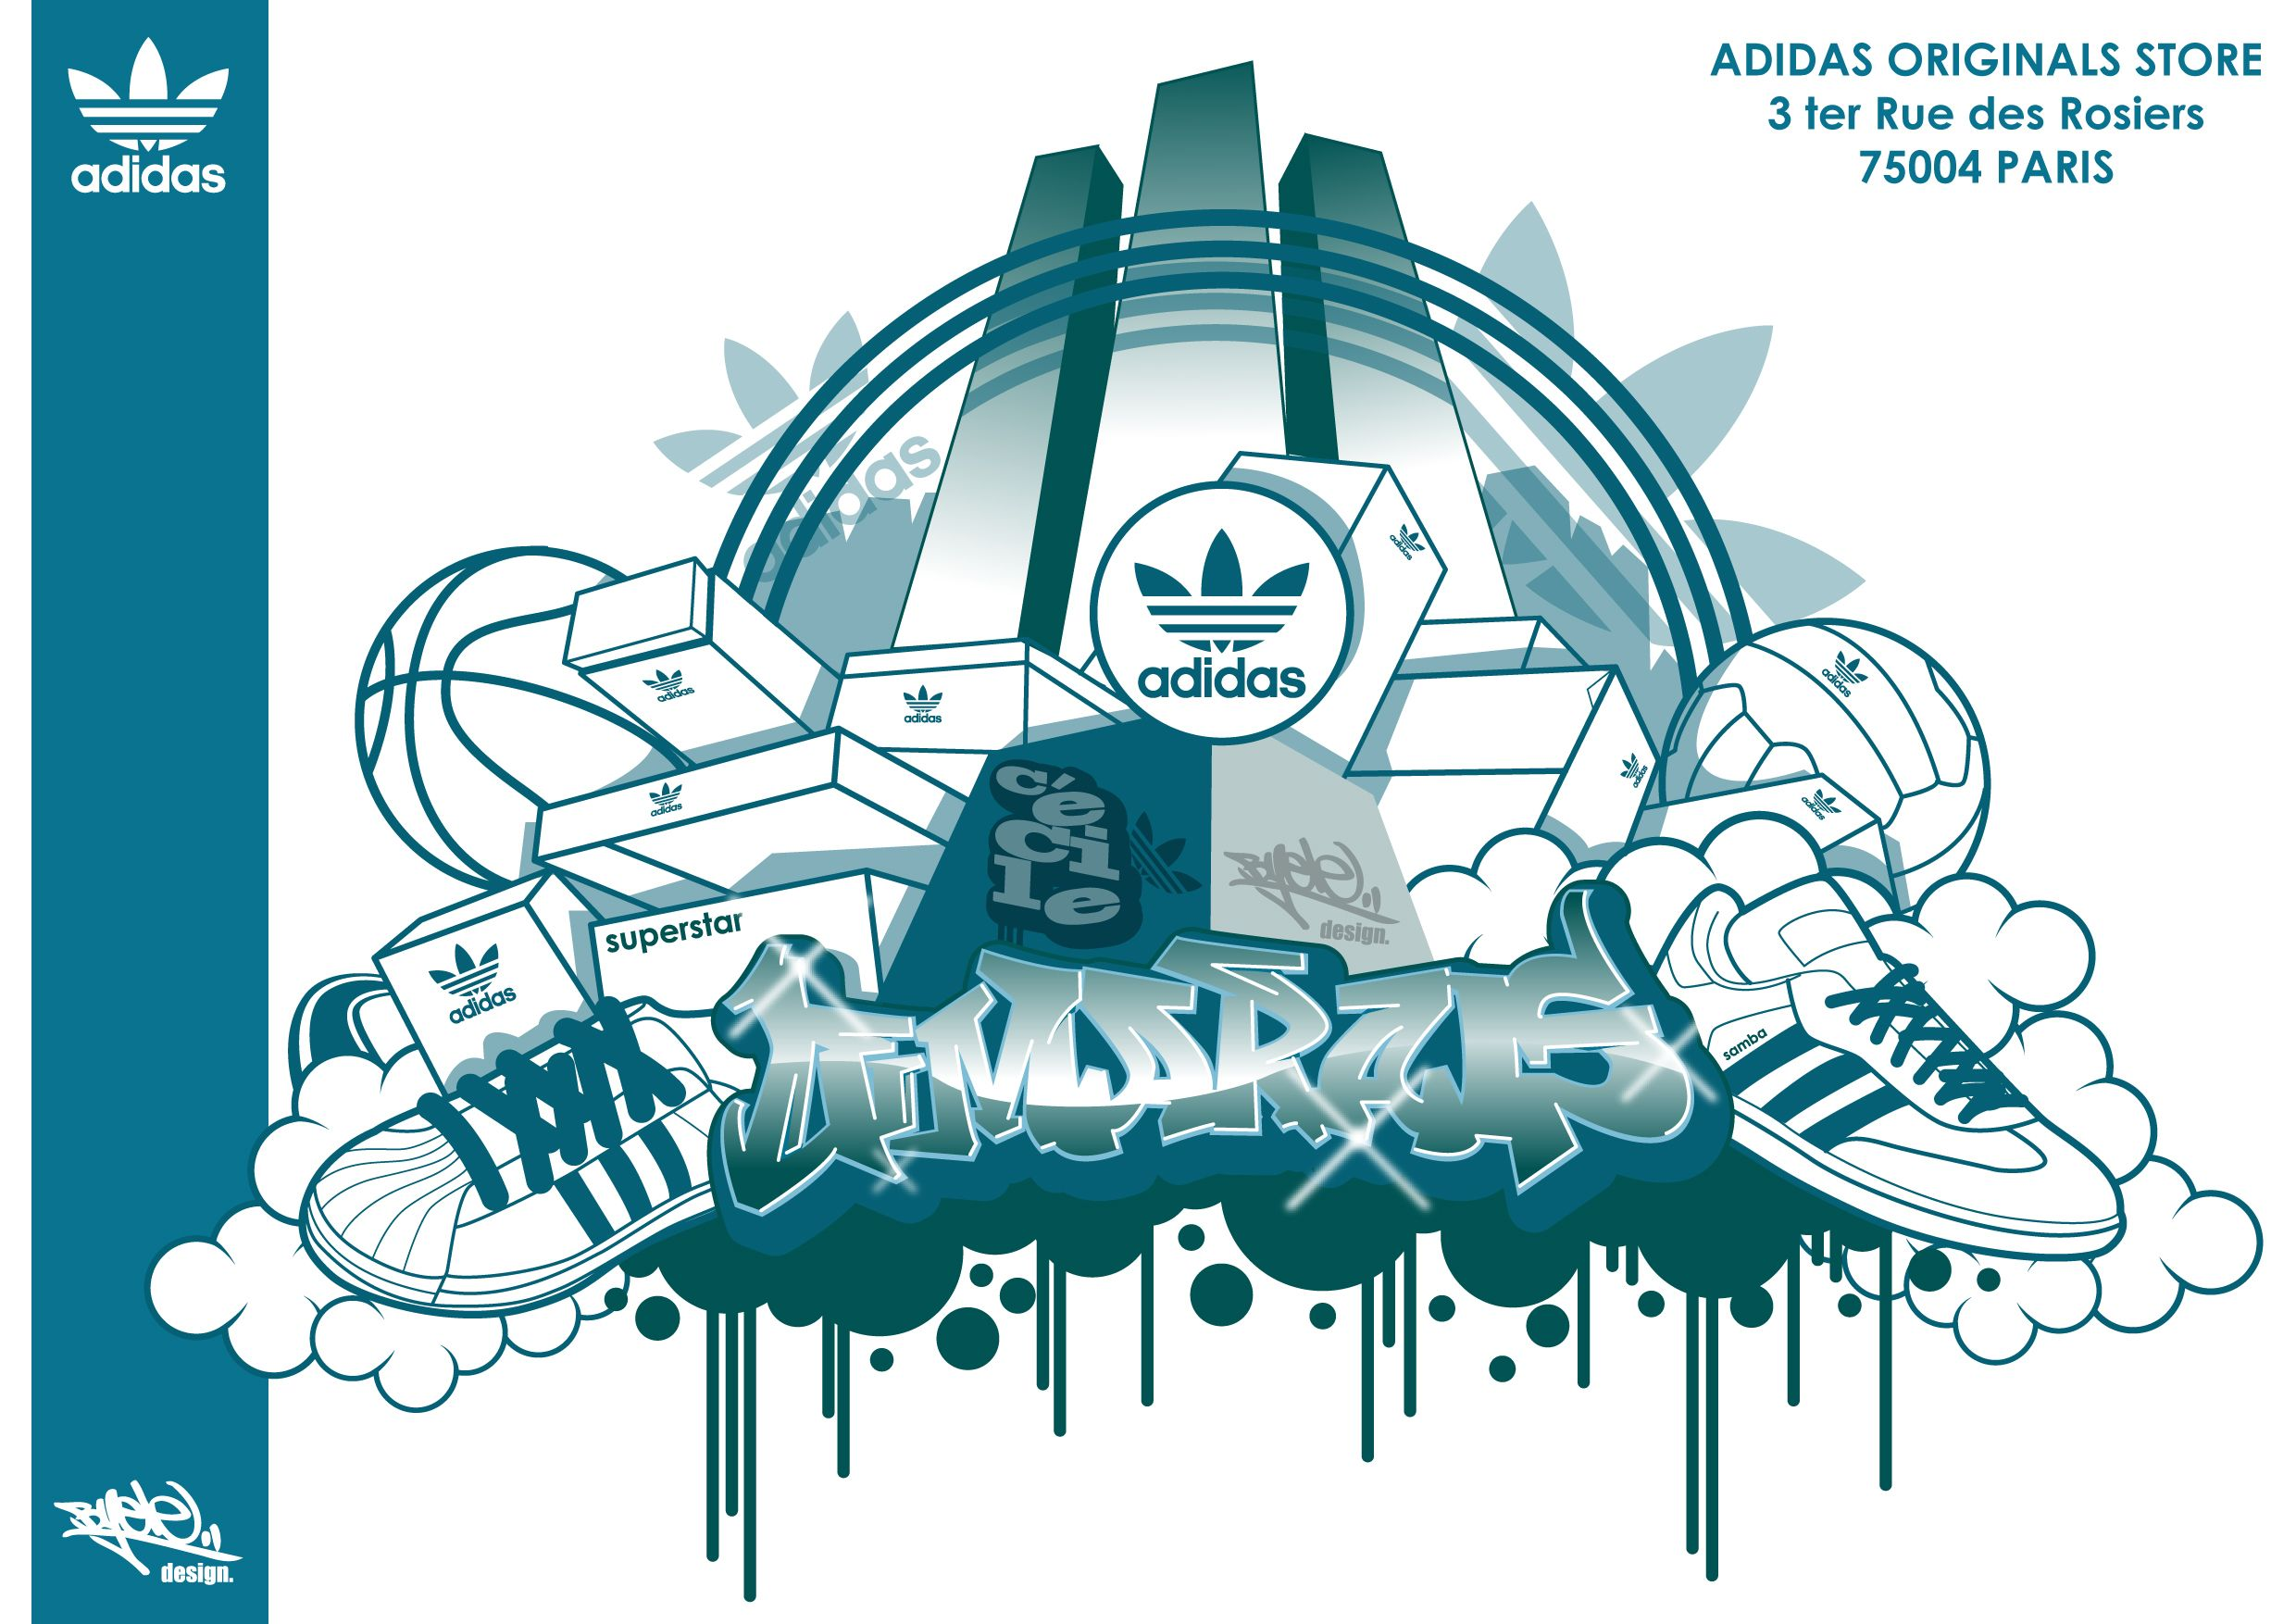 Cinemática pedestal congelador  Adidas Originals | Adidas fashion, Adidas originals, Graffiti lettering